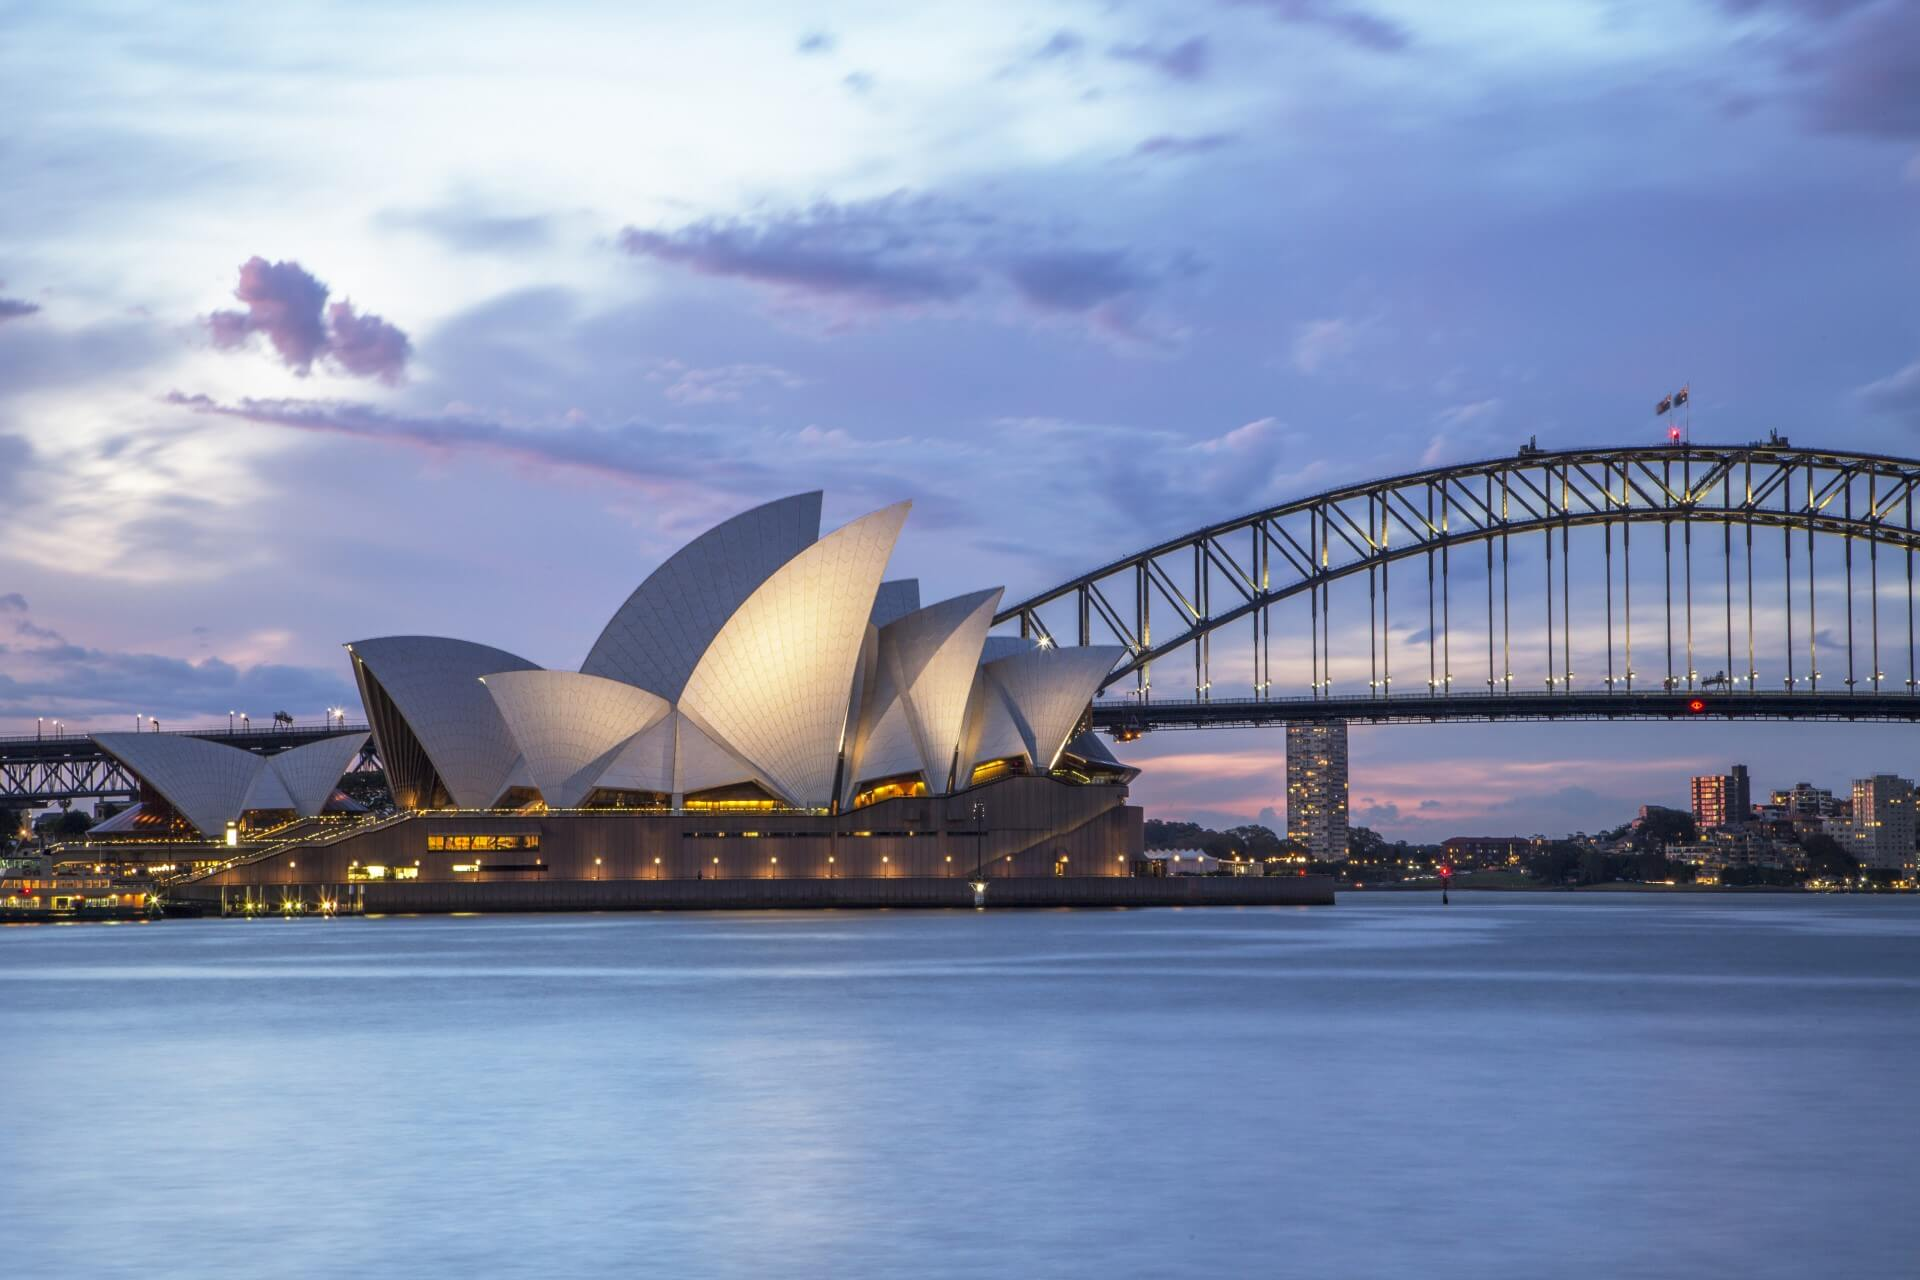 The Sydney Opera House and Bridge.